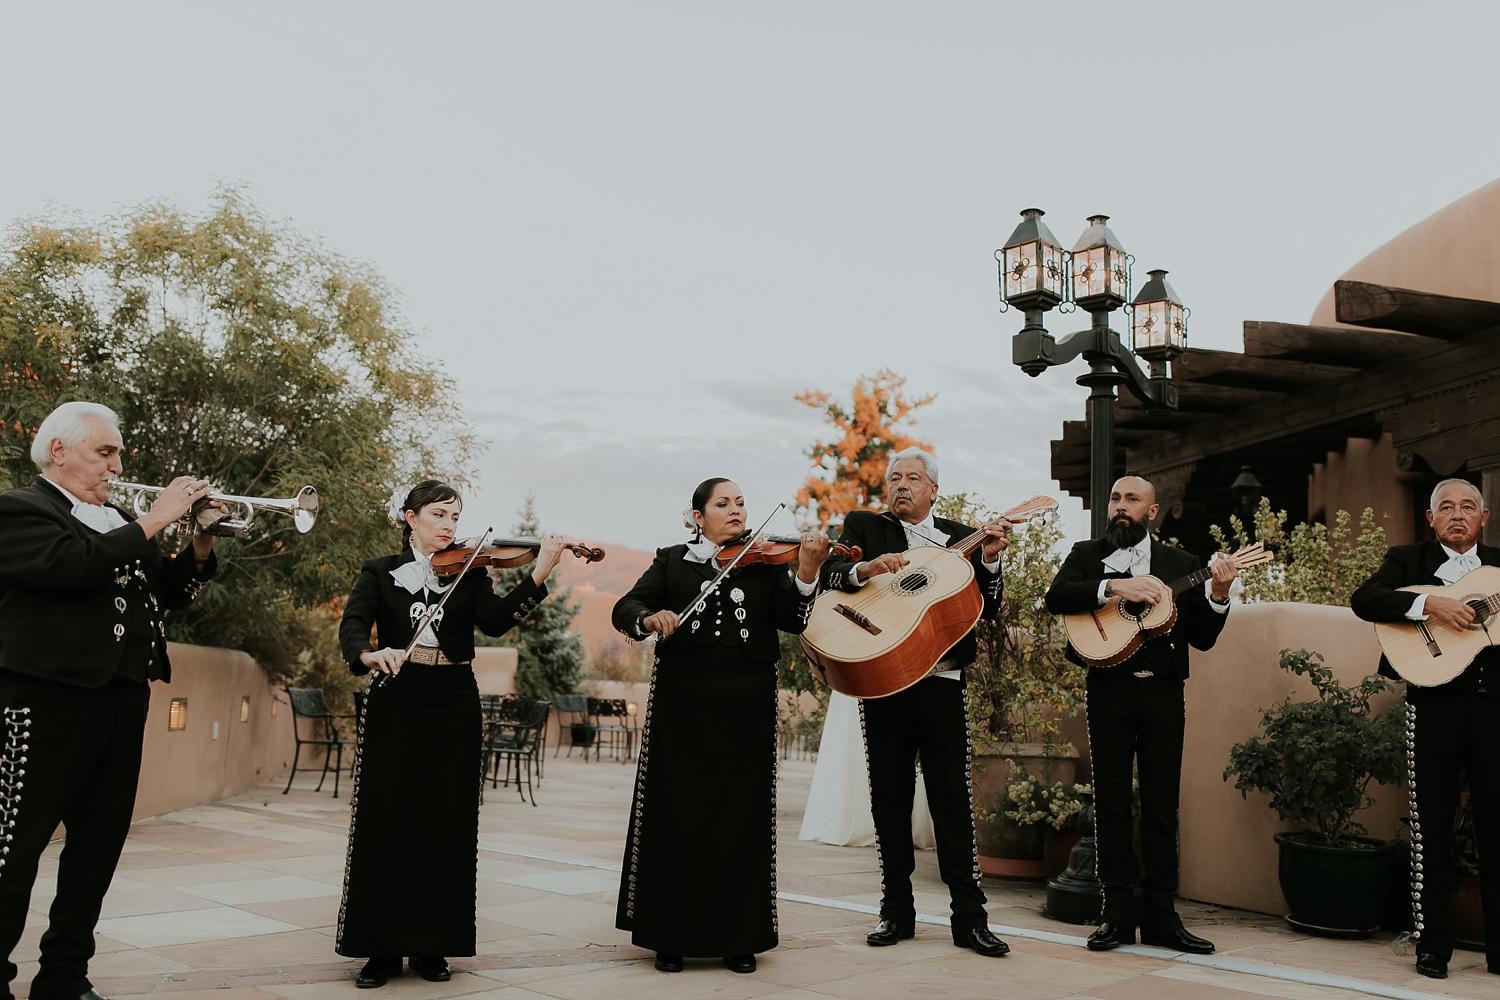 Alicia+lucia+photography+-+albuquerque+wedding+photographer+-+santa+fe+wedding+photography+-+new+mexico+wedding+photographer+-+la+fonda+santa+fe+wedding+-+santa+fe+fall+wedding+-+la+fonda+fall+wedding_0092.jpg